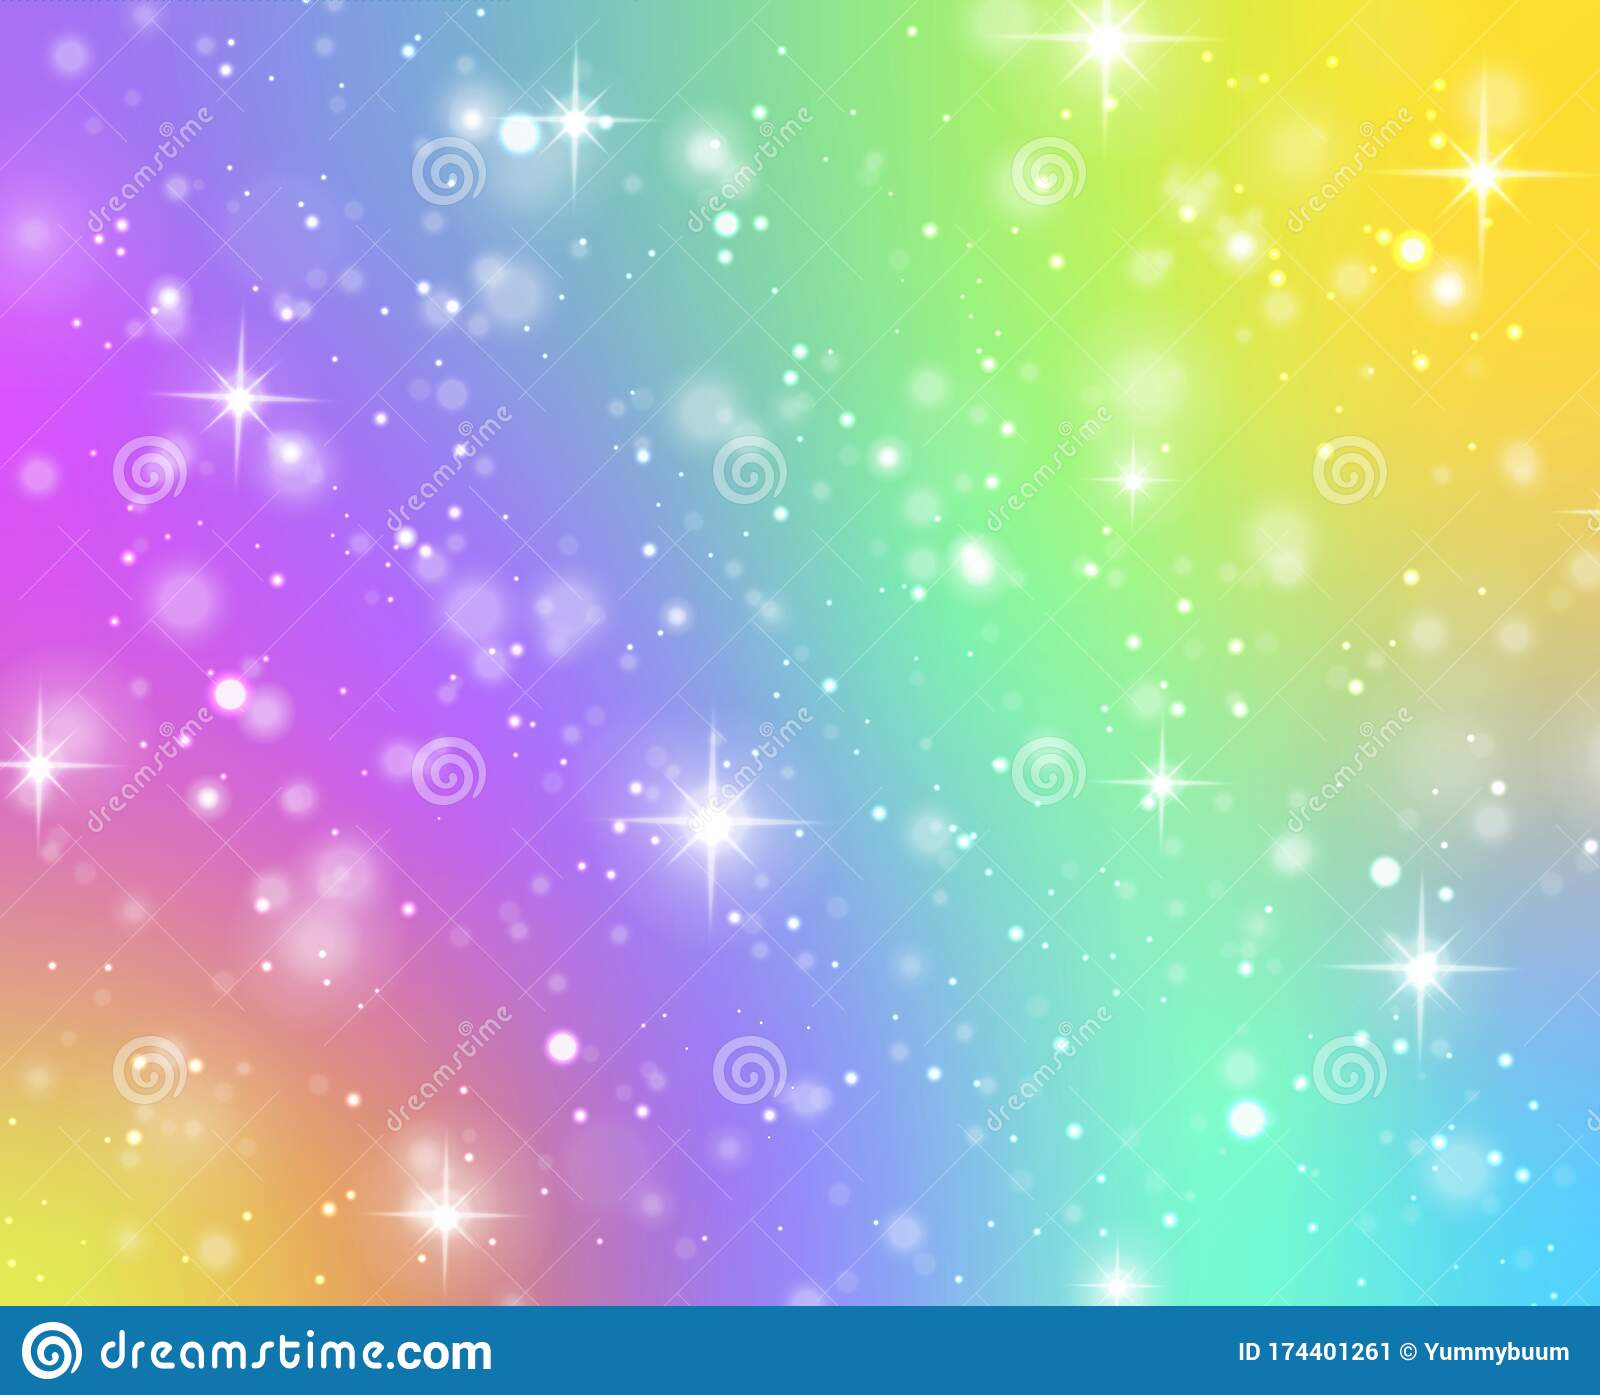 Rainbow Texture Fantasy Unicorn Galaxy Stars In Holographic Sky And Bokeh Iridescent Gradient Hologram With Glitter Stock Vector Illustration Of Coloring Paper 174401261